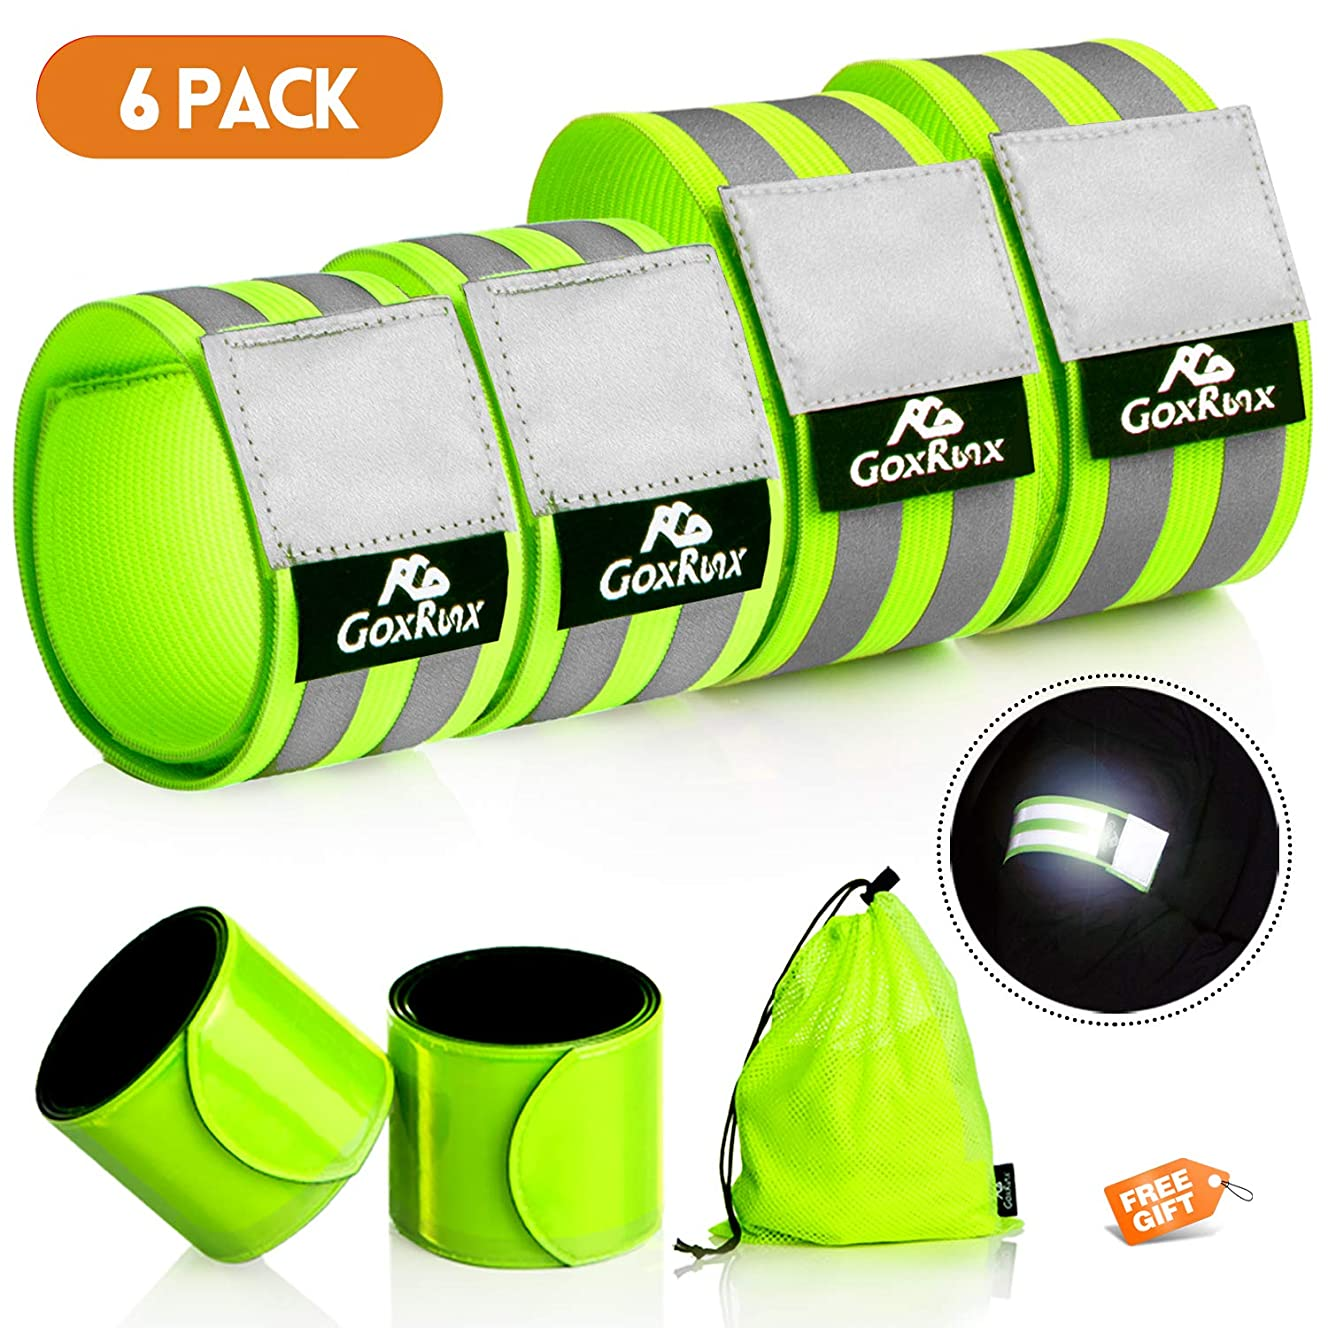 GoxRunx Reflective Bands Running Gear 6 Pack -Adjustable Reflective Armband Arm Wrist Ankle Leg Bands Reflectors -Reflective Tape Straps for Clothing Night Running Cycling Walking -Slap Bracelets